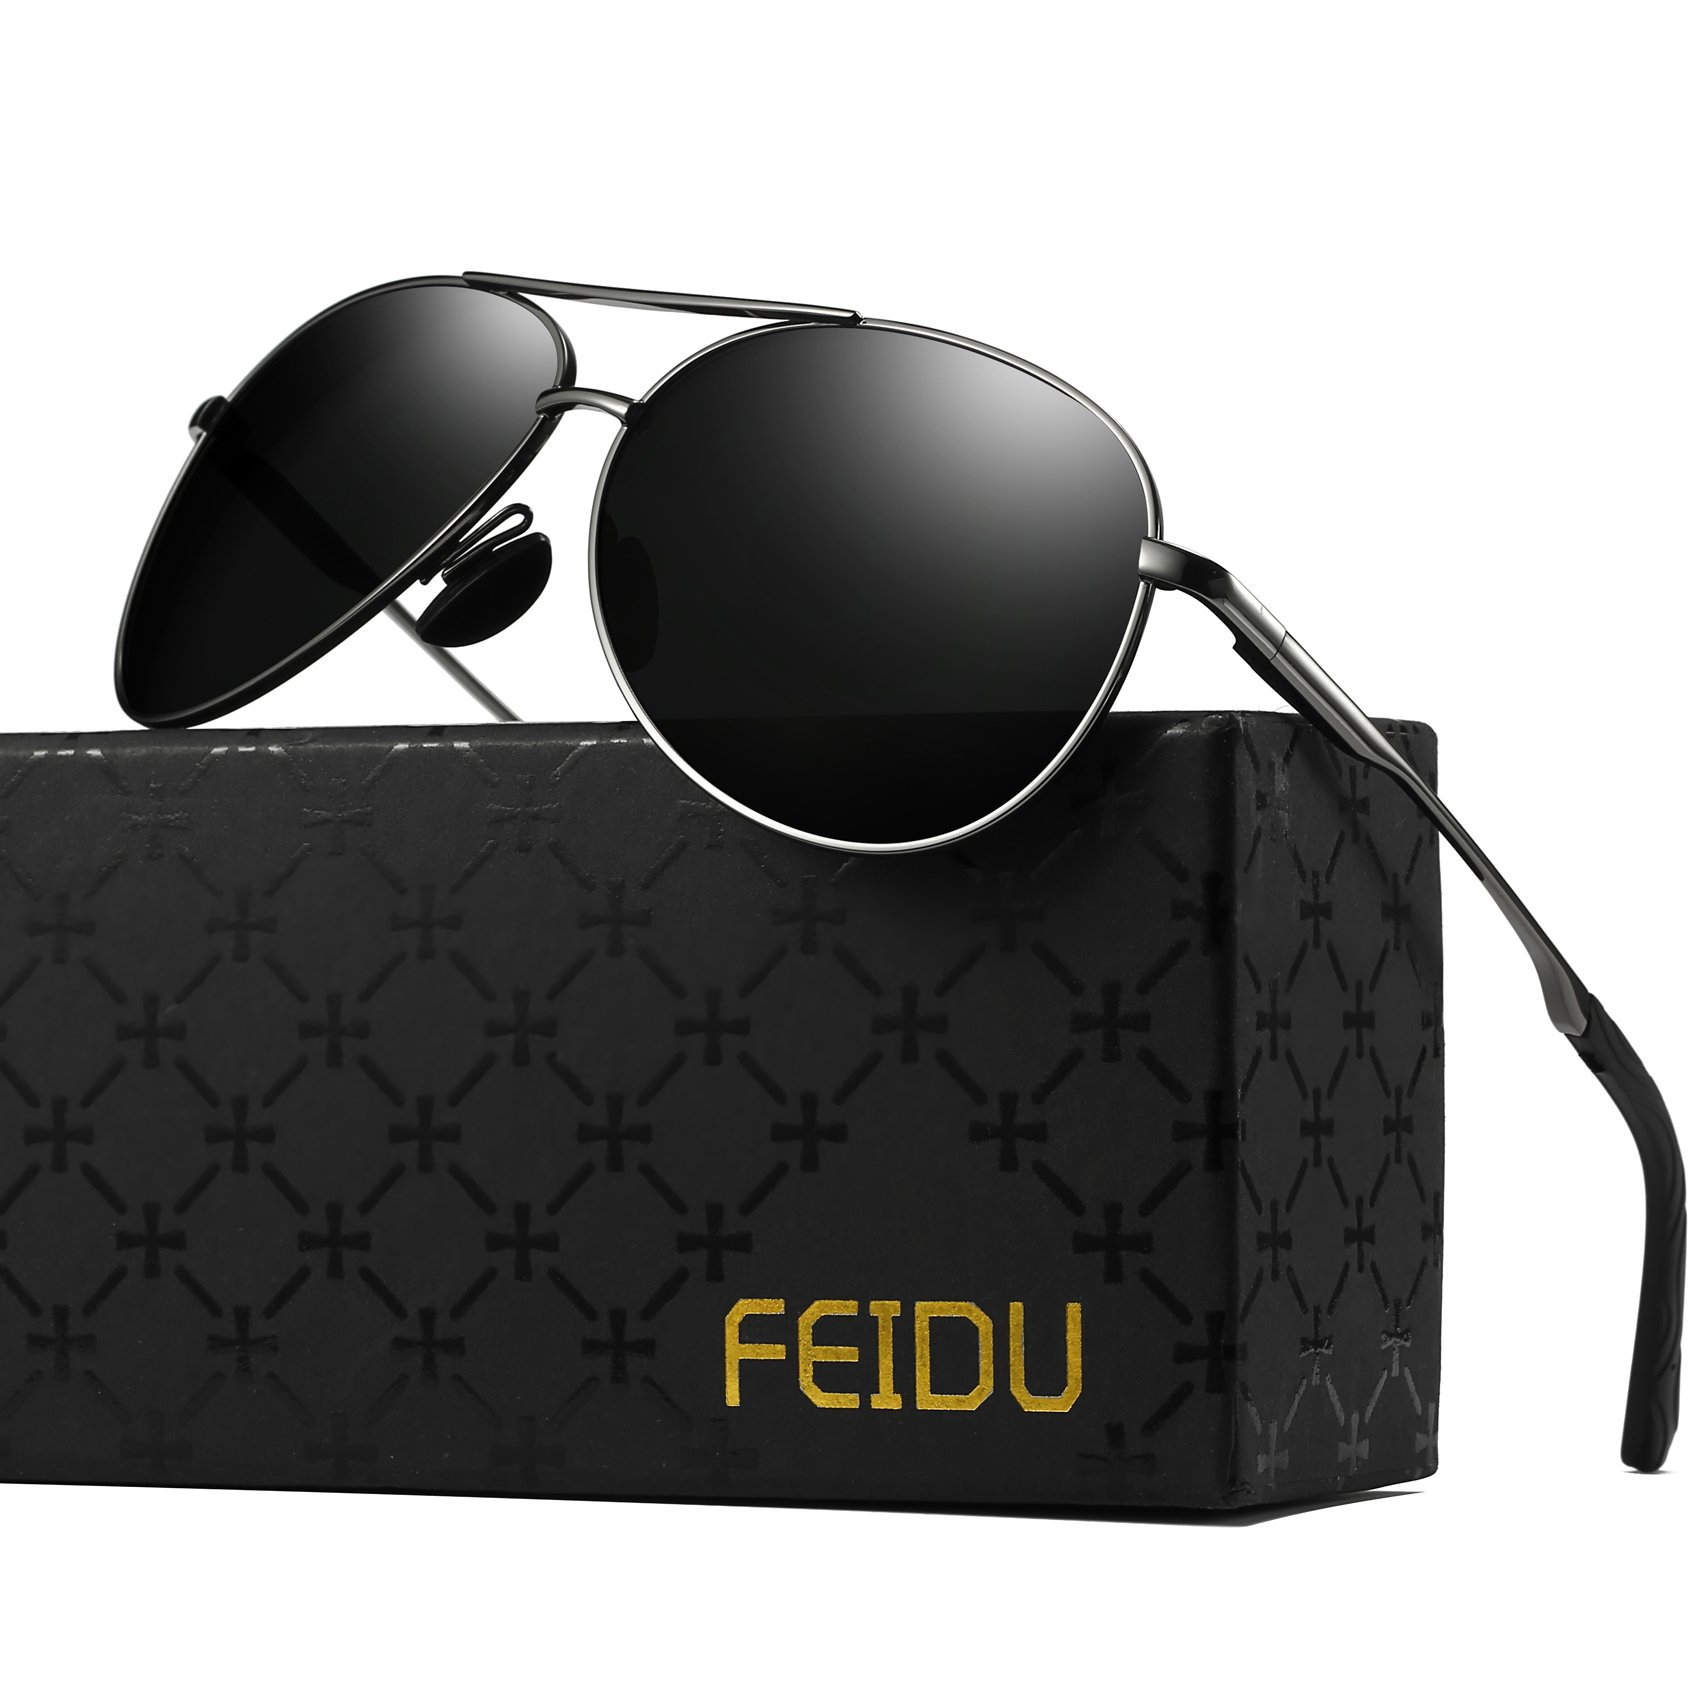 Polarized Aviator Sunglasses for Men - FEIDU Driving Sunglasses Unisex FD9002 (Black/Gun, 2.28) by FEIDU